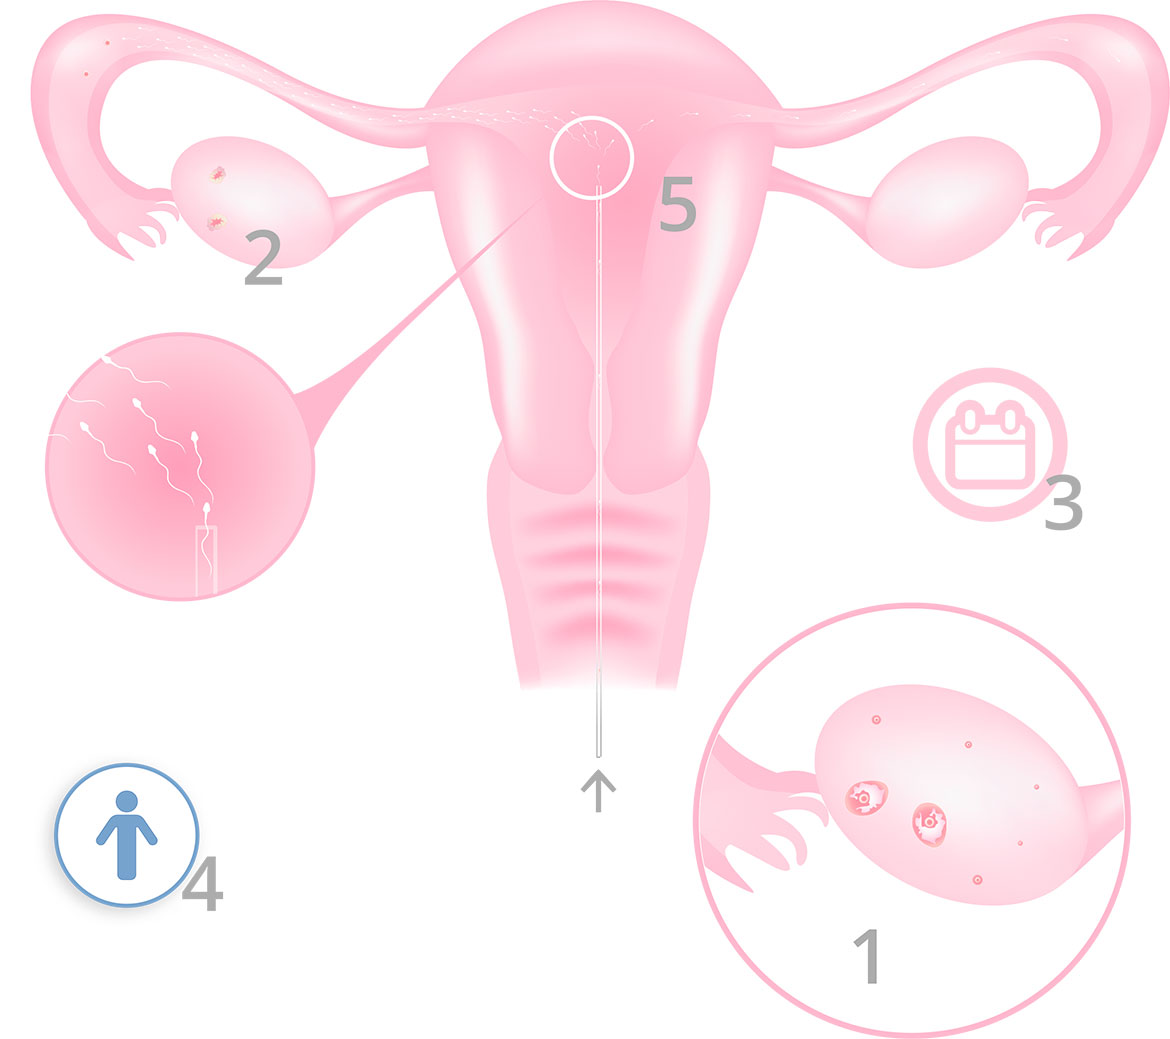 Artificial Insemination by husband (AIH) - Infographic